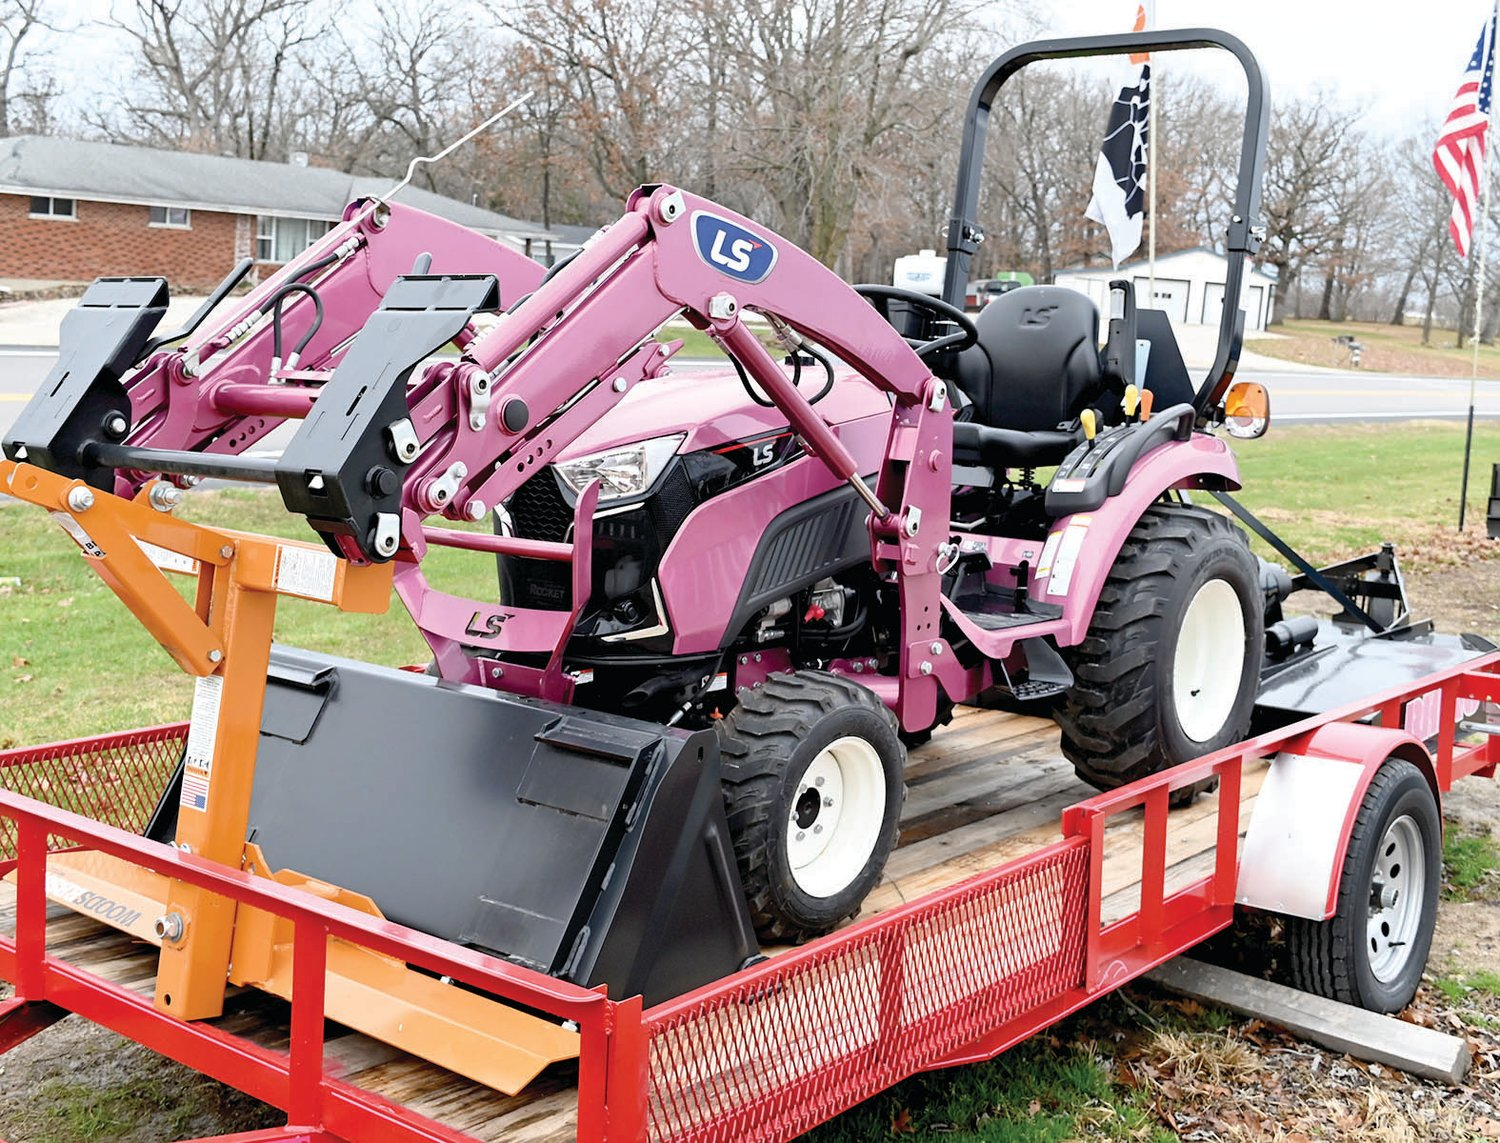 This pink LS MT225s, a25hp, Hydrostat four-wheel-drive tractor is being sold by Diamond R Equipment in Westphalia to raise funds for the Community Breast Care Project based in Jefferson City.